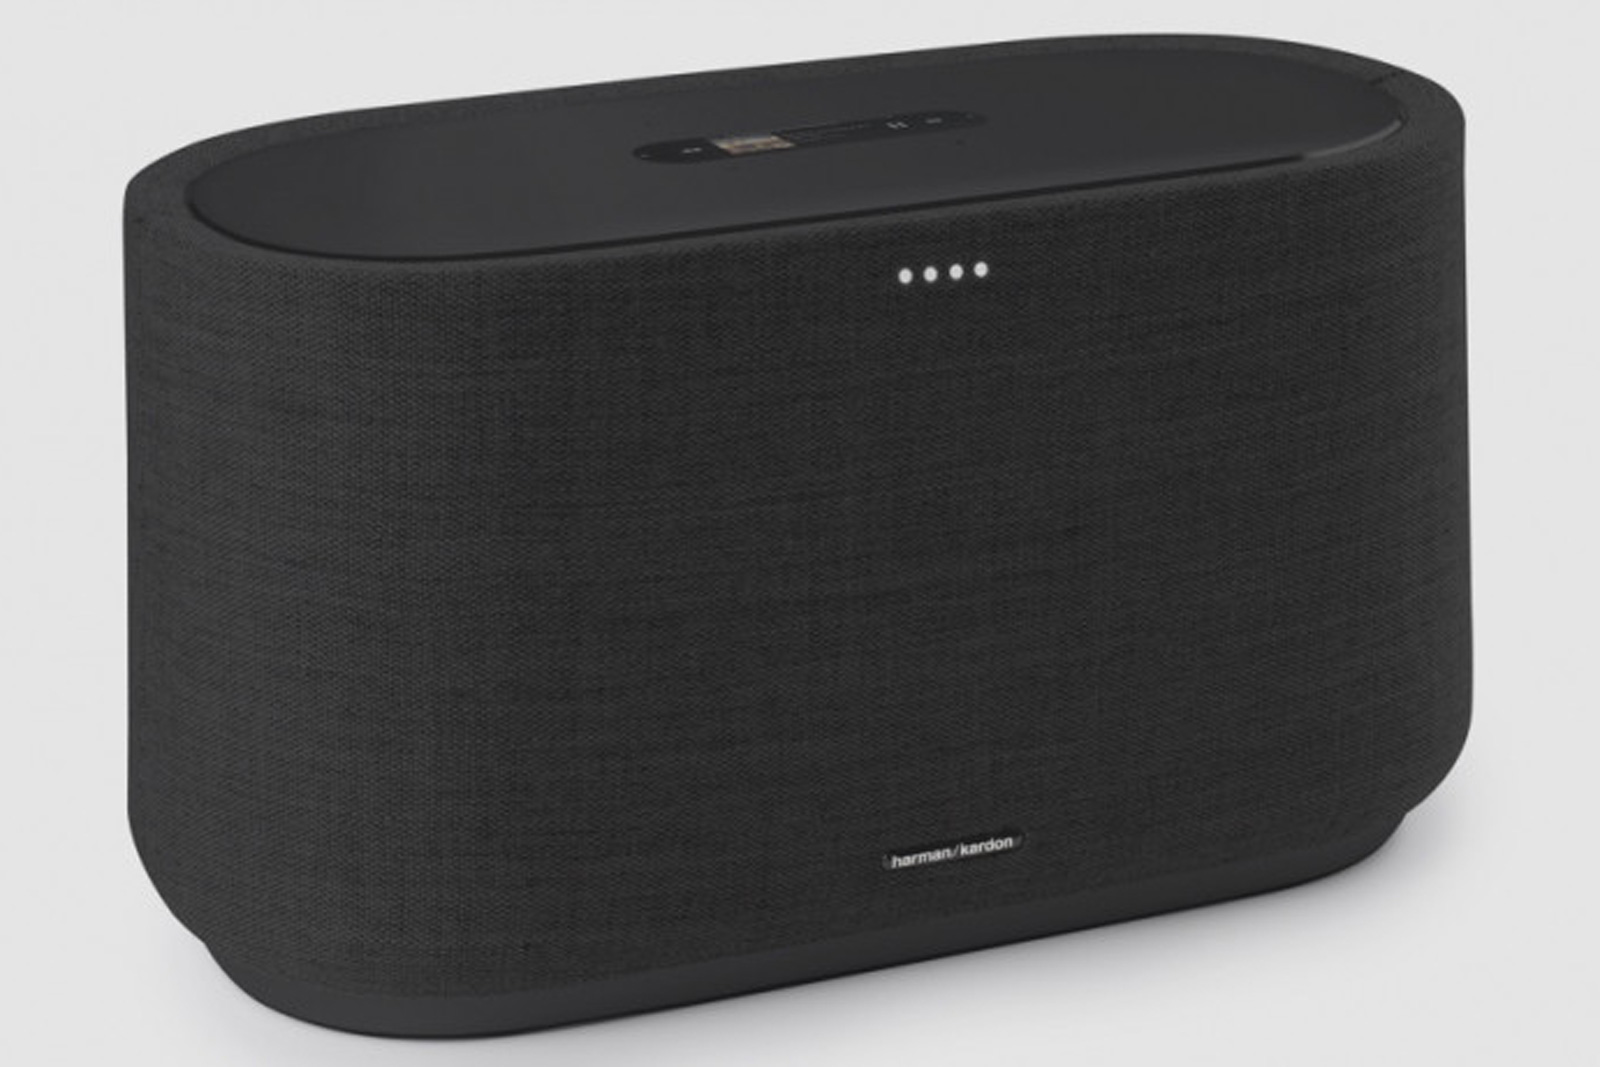 Harman Kardon's Google Assistant speaker packs 200W of ...